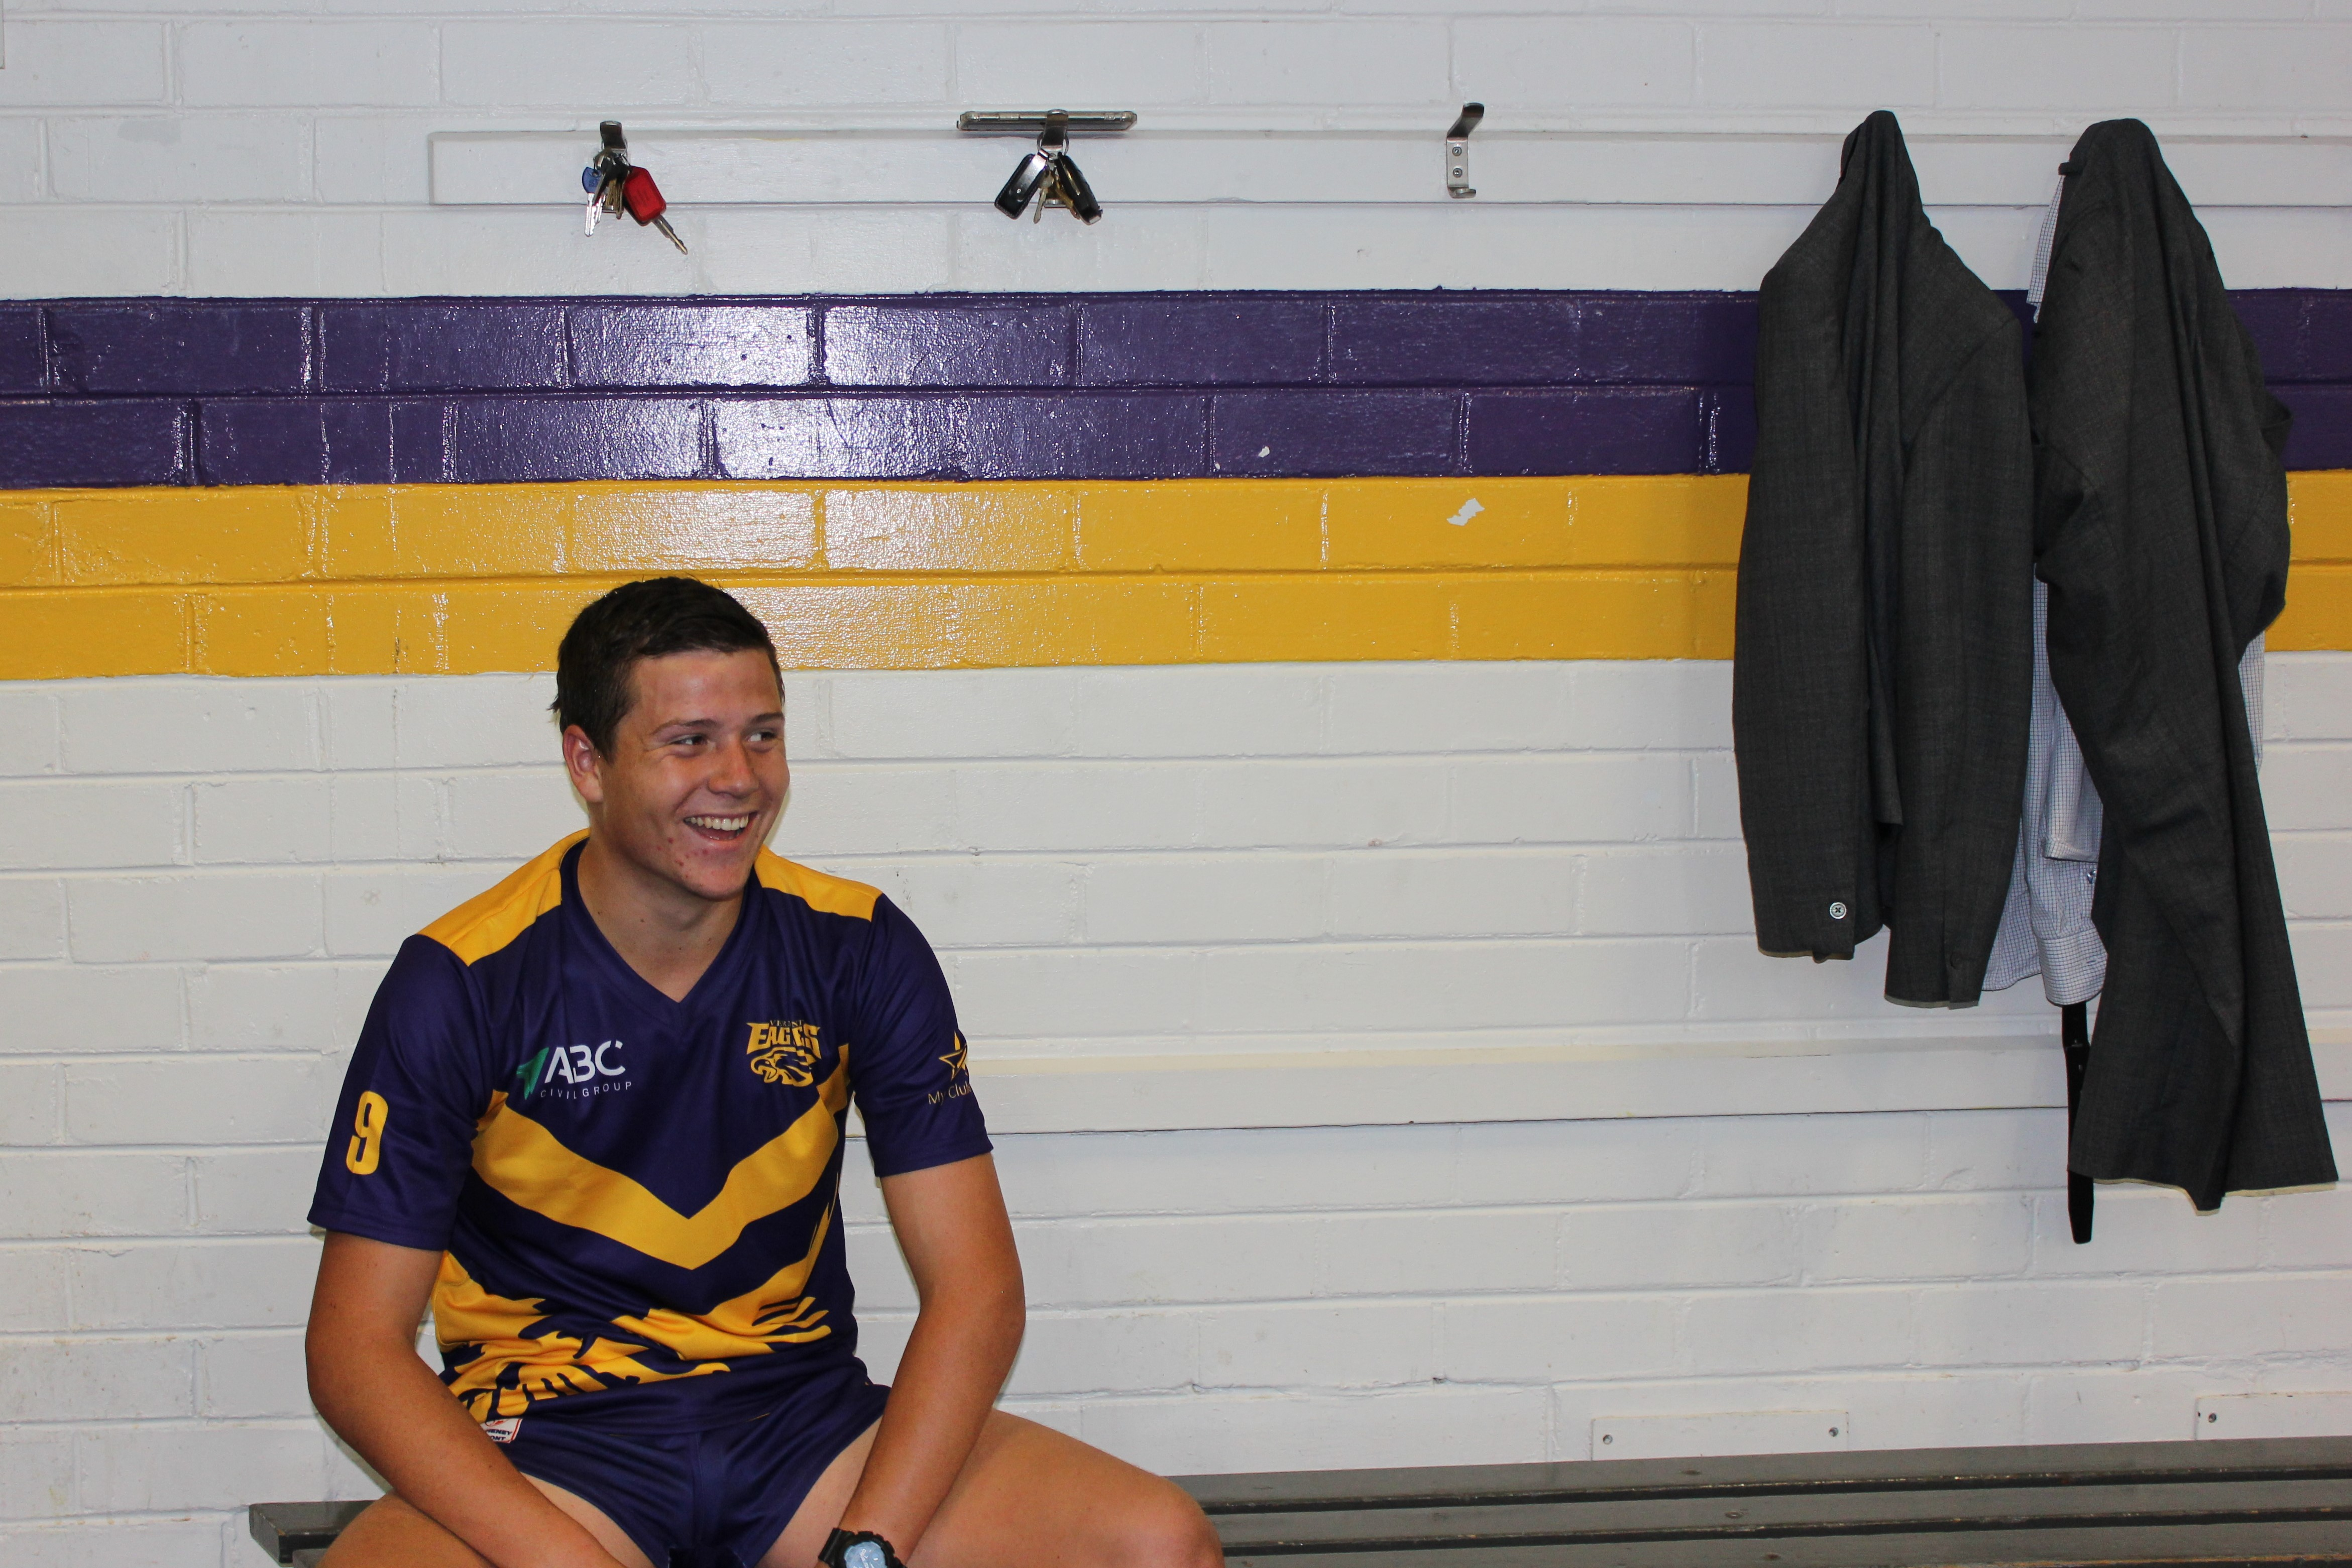 """Newly elected Vermont Under 19s captain, Damien Furey.""""You can just tell, some kids are just natural leaders,"""" says coach Jack Best. """"They get around the boys and bring everyone up."""""""